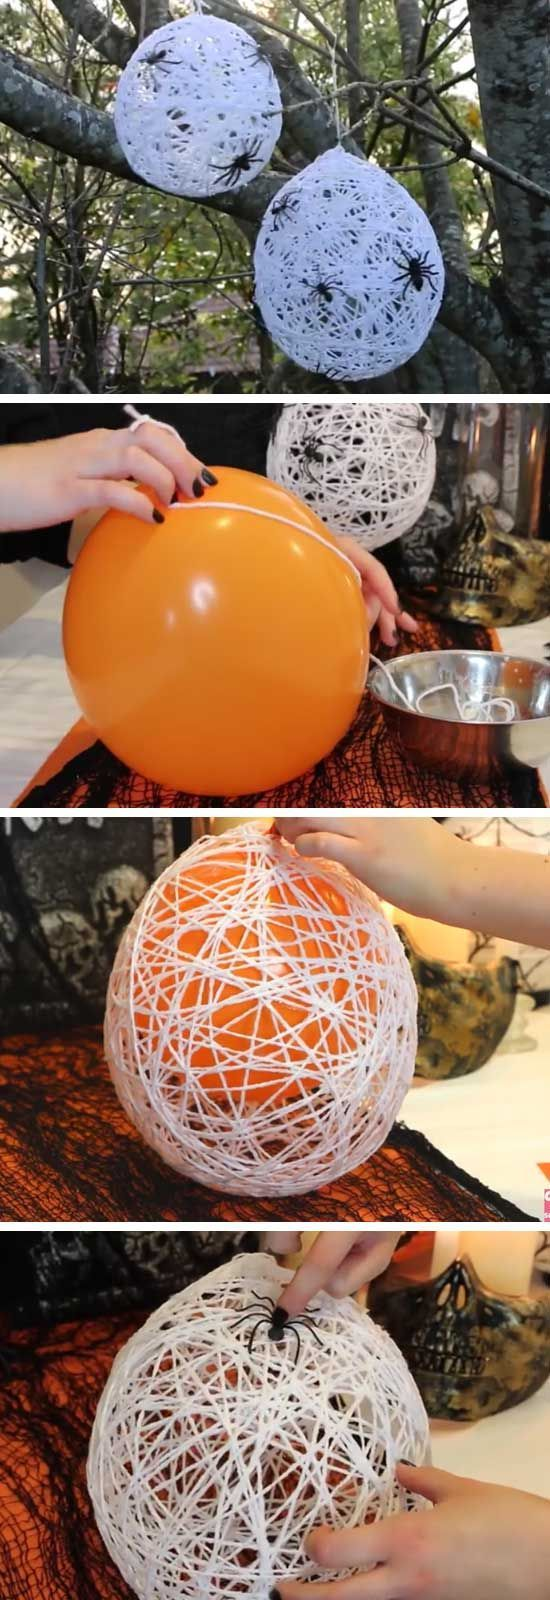 How to Make Super Fun Halloween Crafts for Kids - Spider Nests